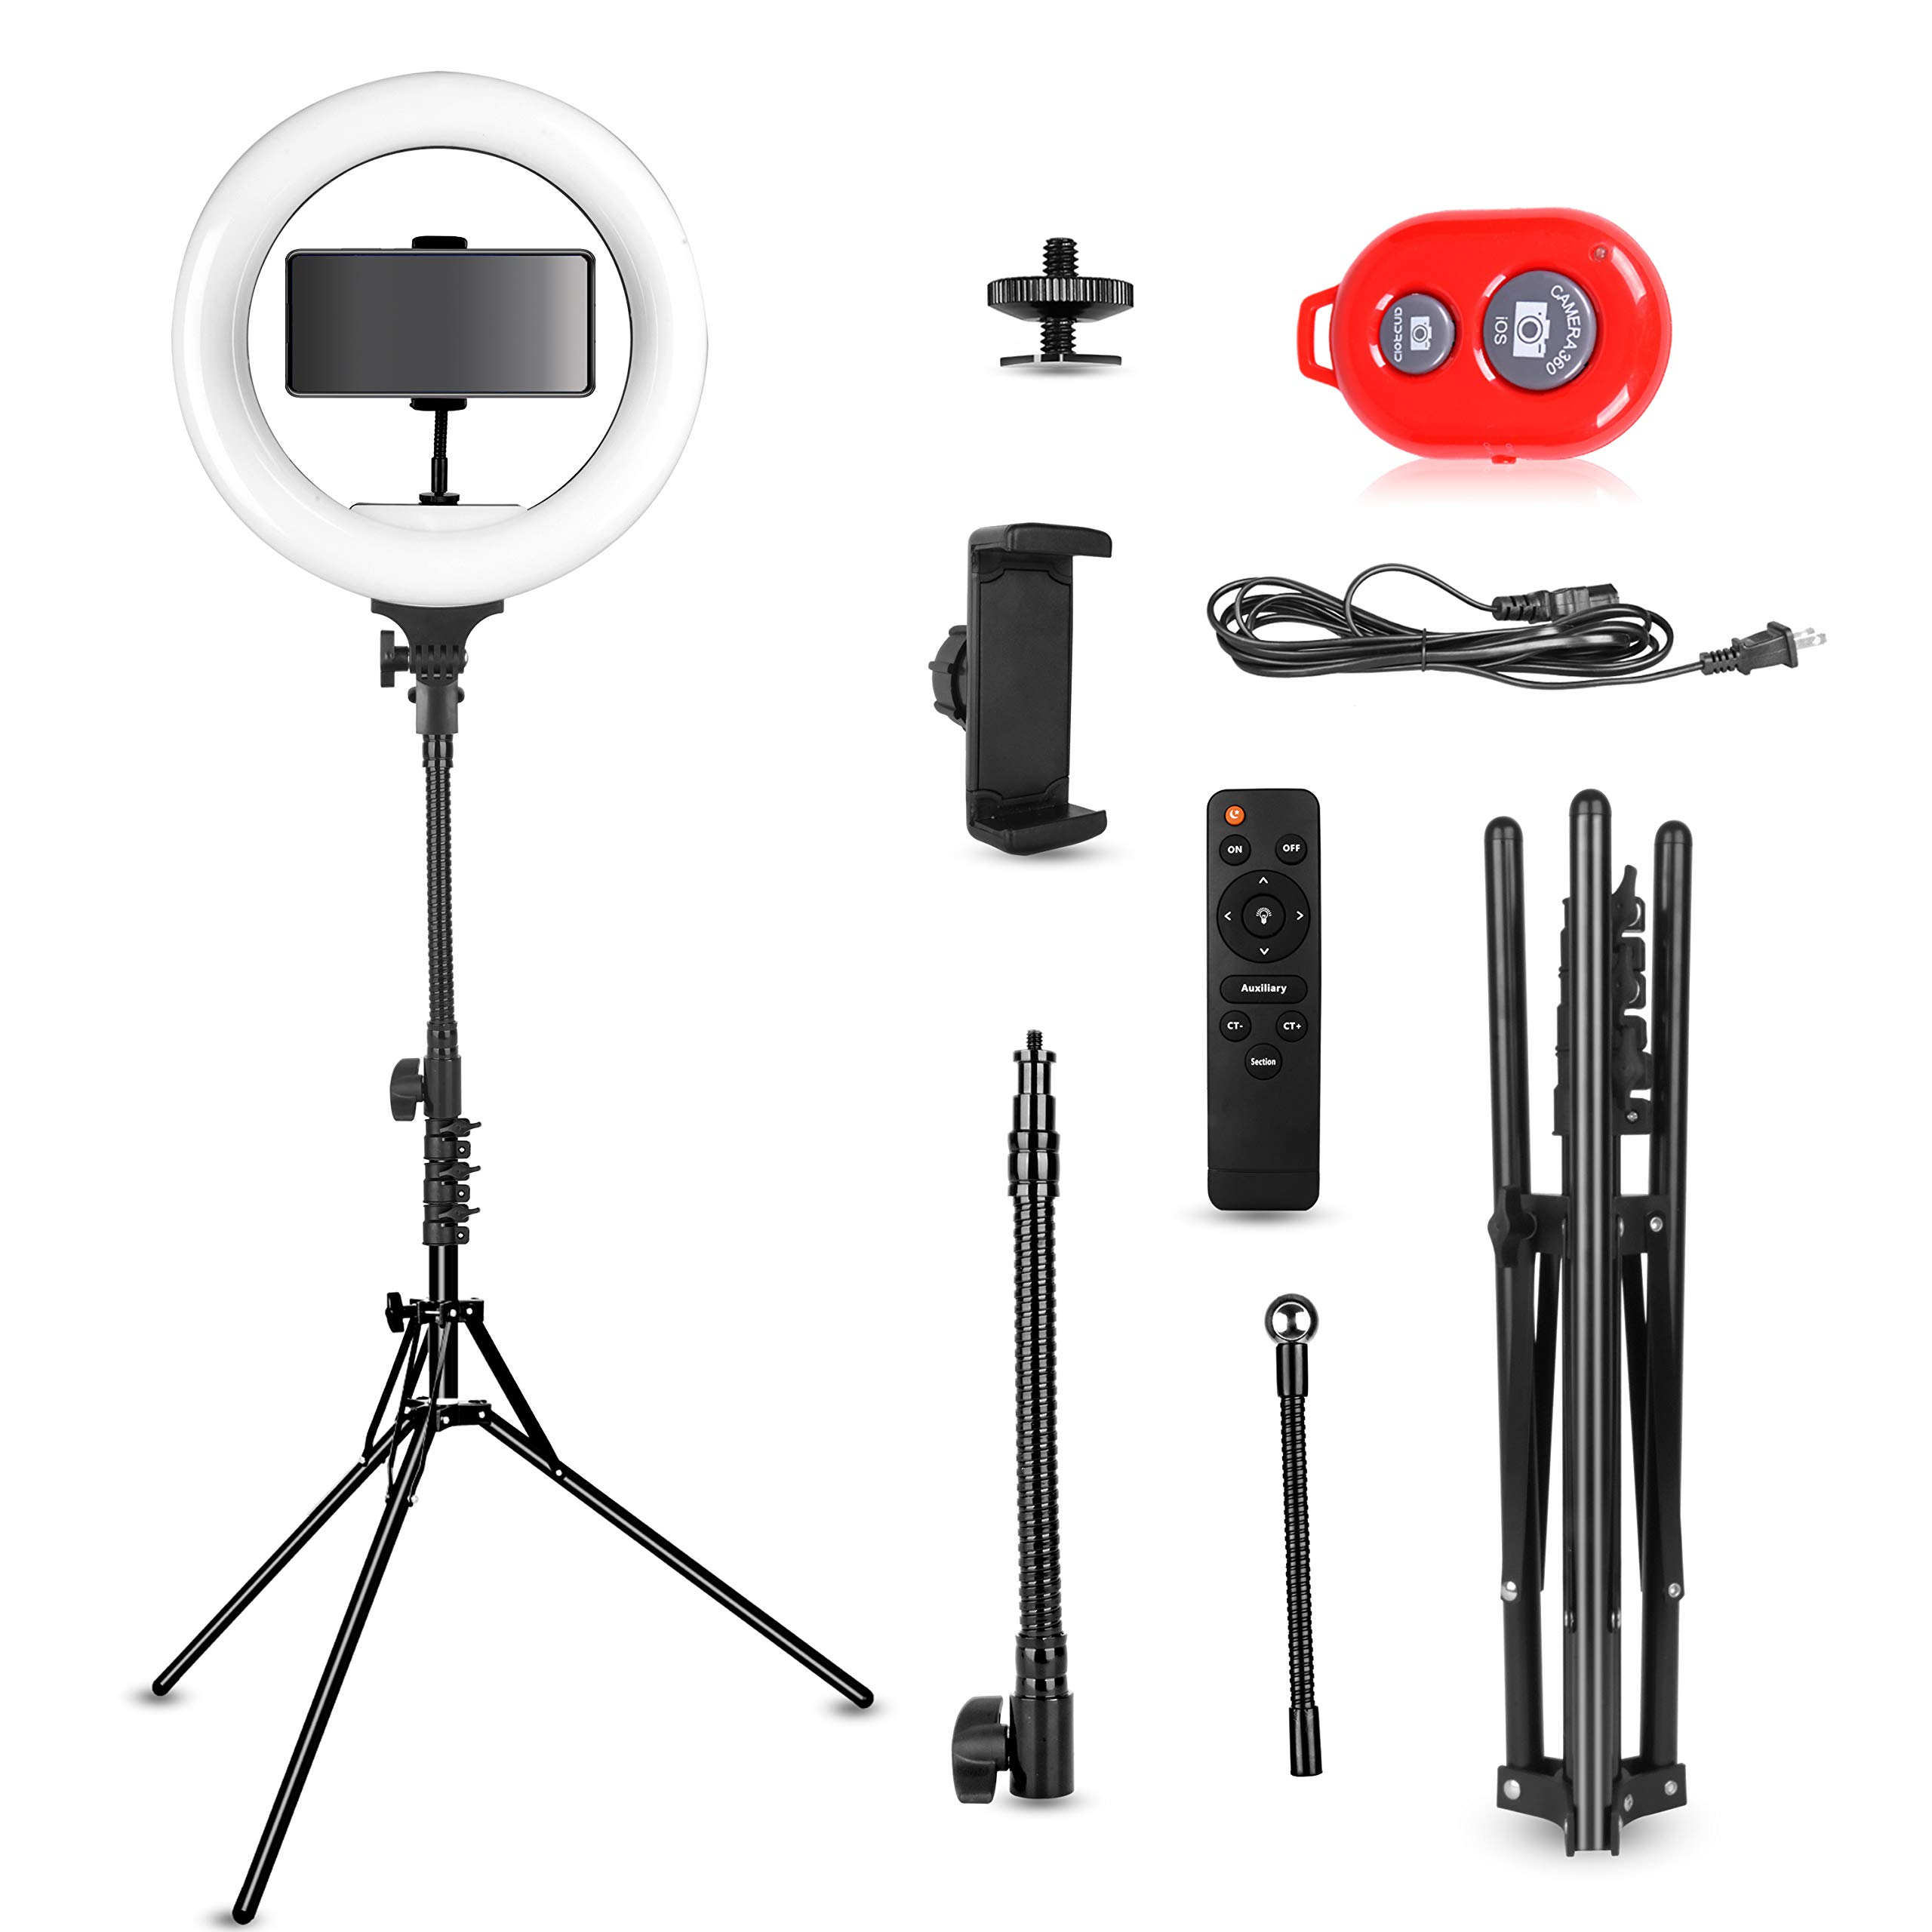 Emart 14 inch Bi-Color LED Ring Light Photography with Stand - Ultra Thin Innovation, 40W Dimmable & Color Temperature Adjustable Circle Makeup Lighting Kit for Shooting YouTube Video by EMART